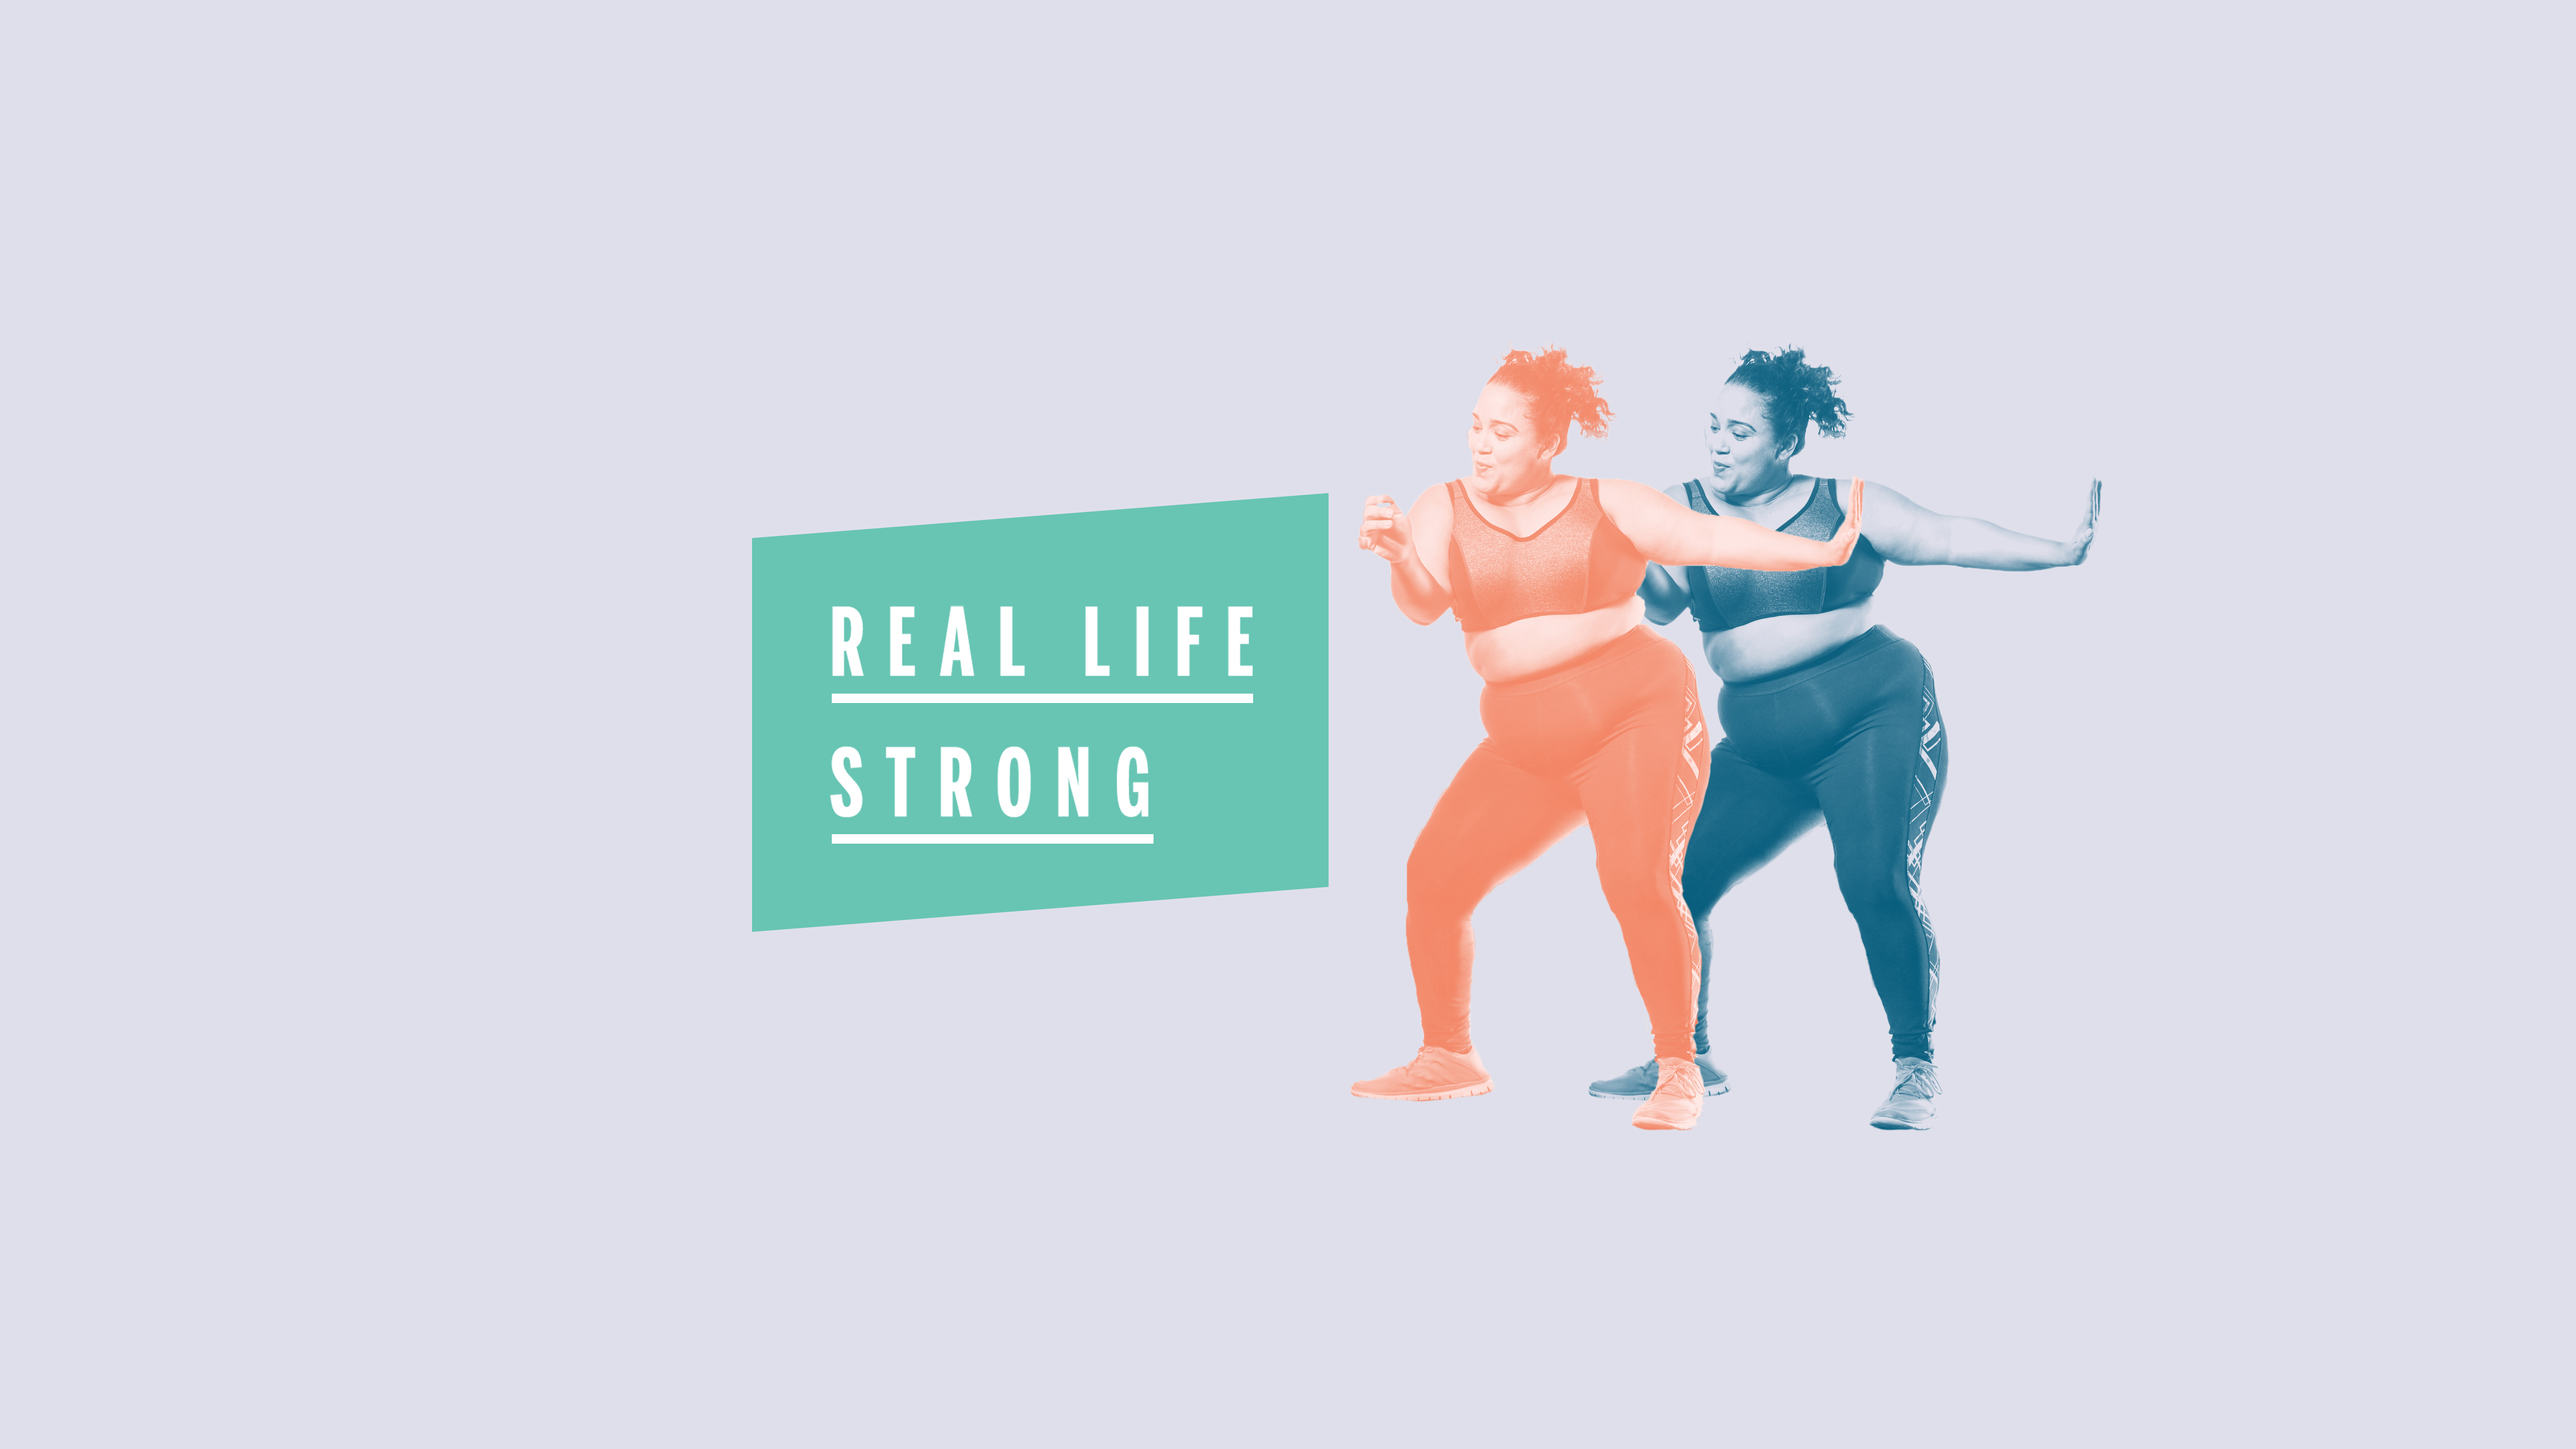 jessie-diaz-real-life-strong